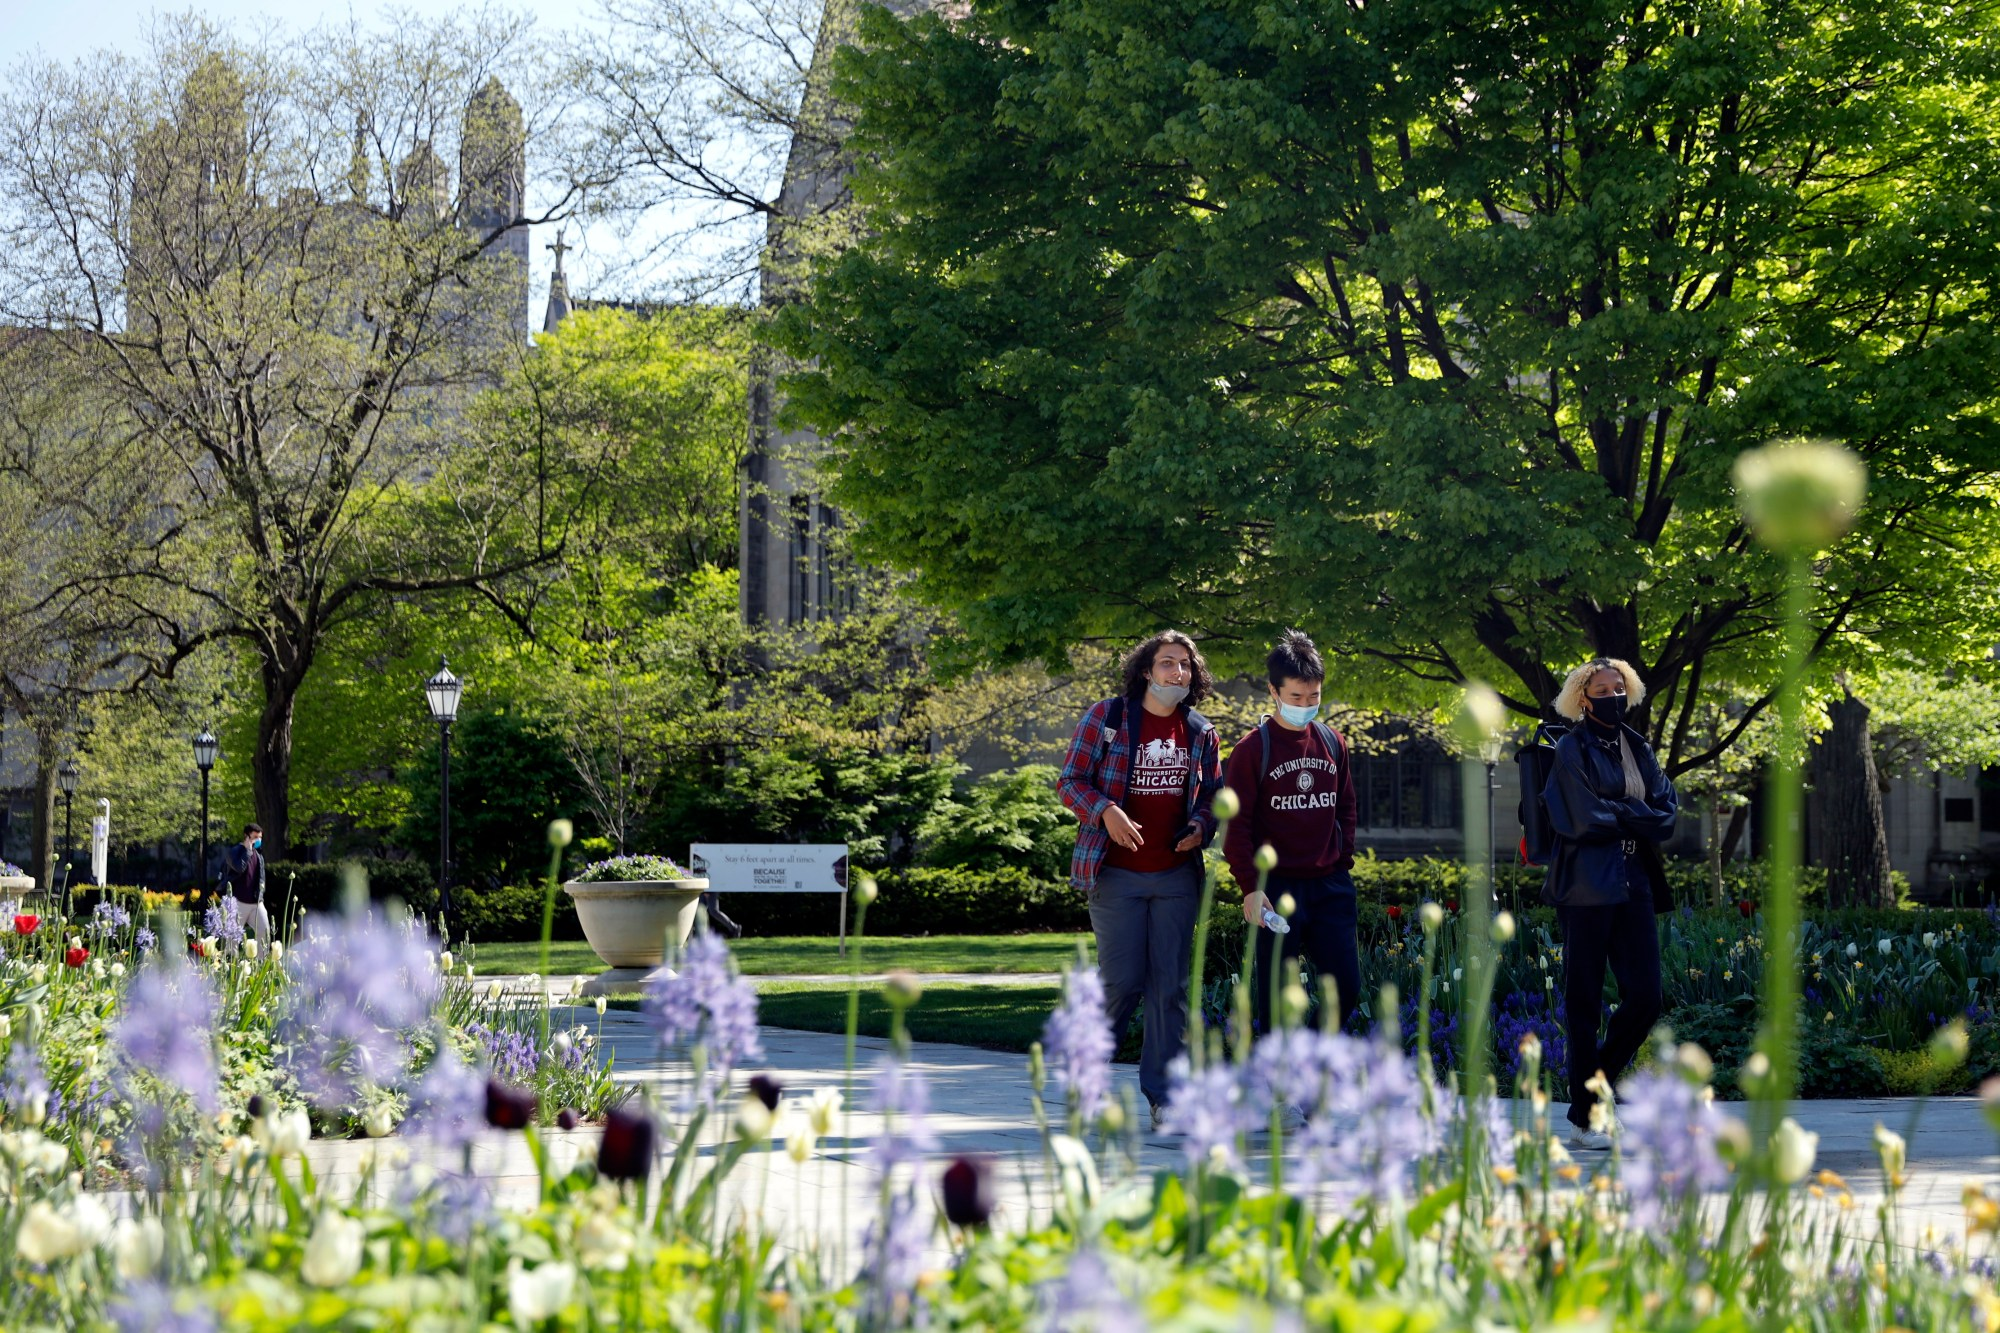 Students wearing masks make their way through the University of Chicago campus, Thursday, May 6, 2021, in Chicago. (AP Photo/Shafkat Anowar)